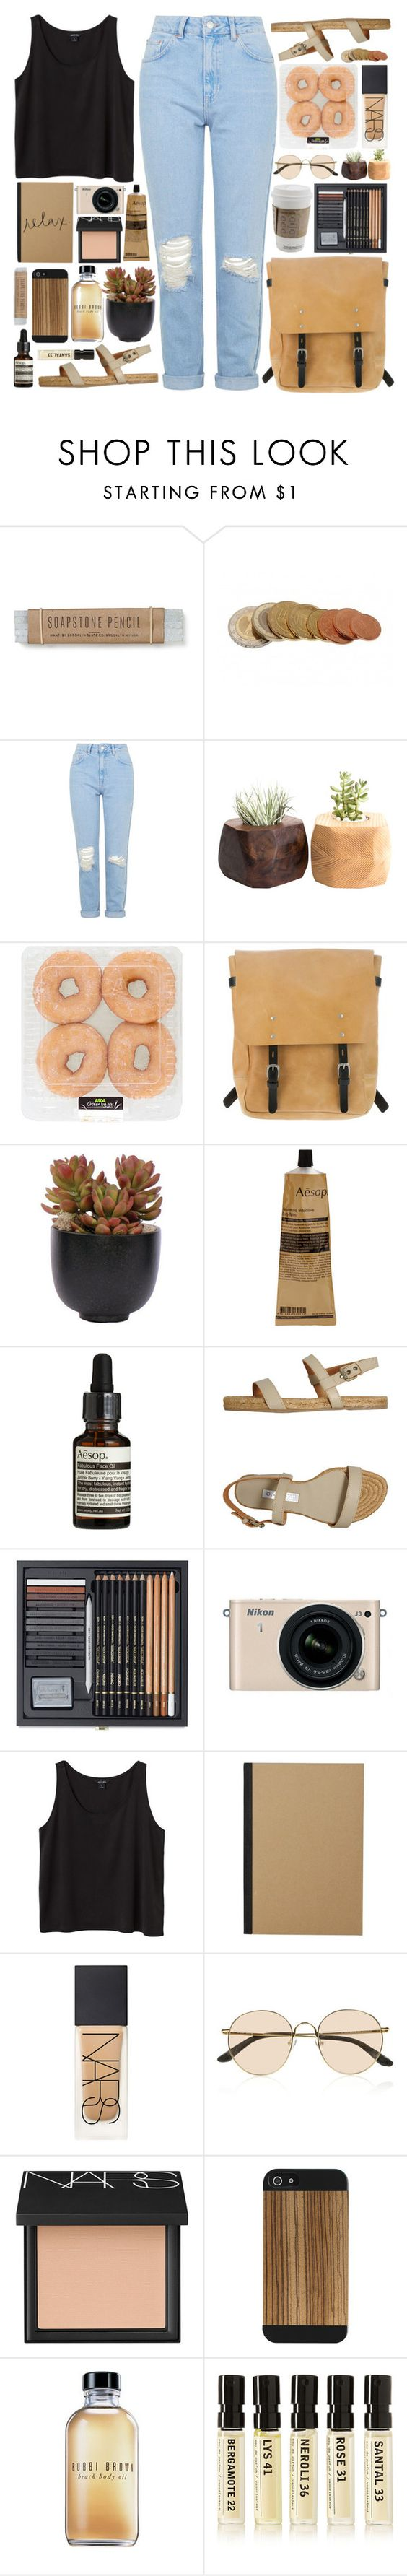 """""""' i would never let you go. '"""" by m-balli ❤ liked on Polyvore featuring Topshop, Ally Capellino, Lux-Art Silks, Aesop, L'Autre Chose, Nikon, Monki, NARS Cosmetics, Acne Studios and The Row"""